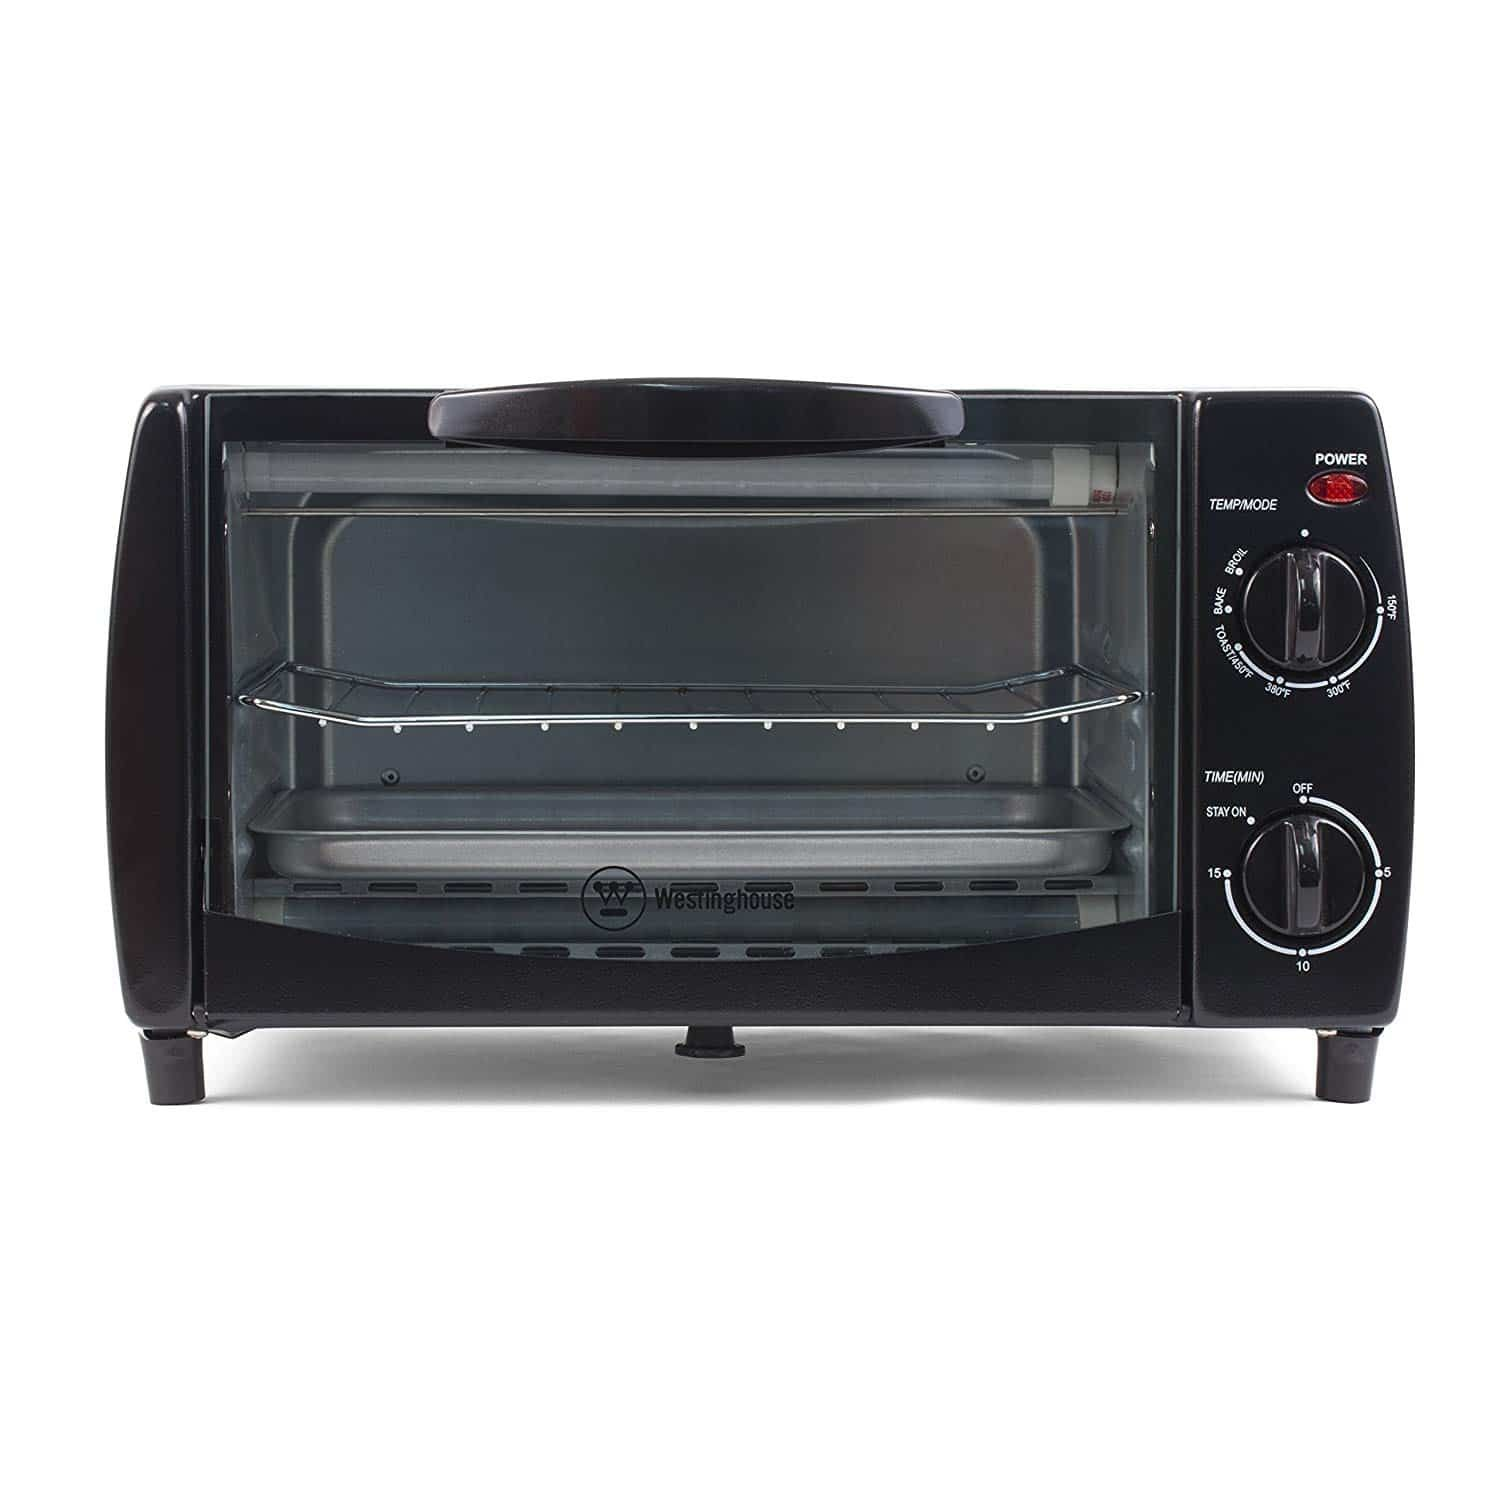 Westinghouse 4 Slice Countertop Toaster Oven Toaster Oven Toaster Oven Walmart Countertop Toaster Oven